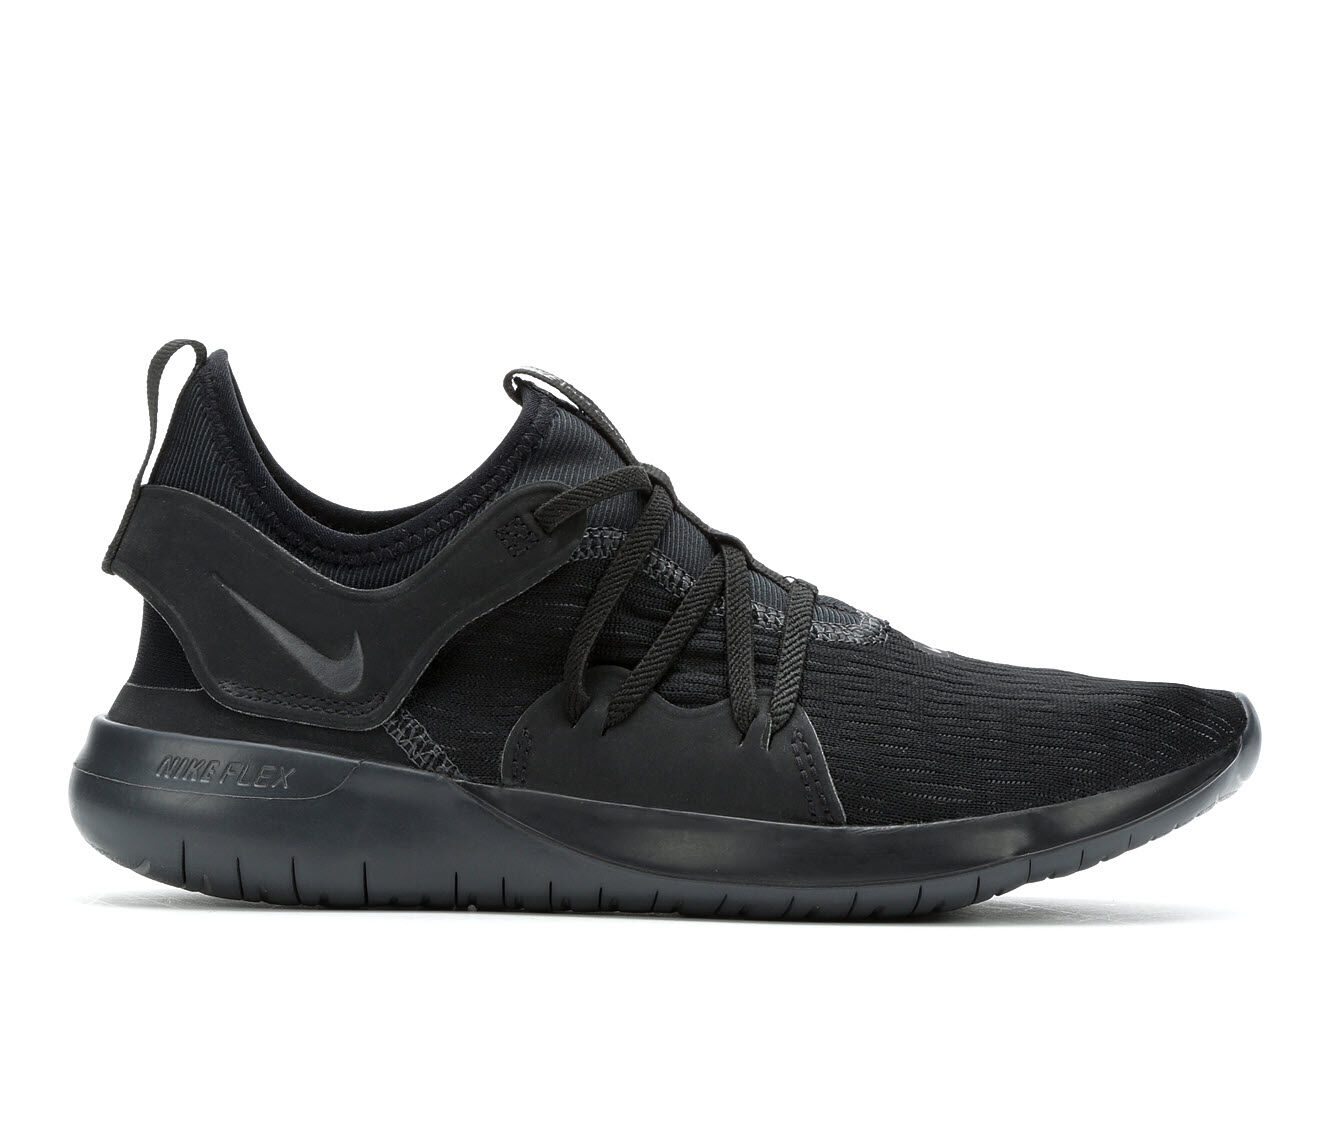 buy sale Women's Nike Flex Contact 3 Running Shoes Black/Anthracit